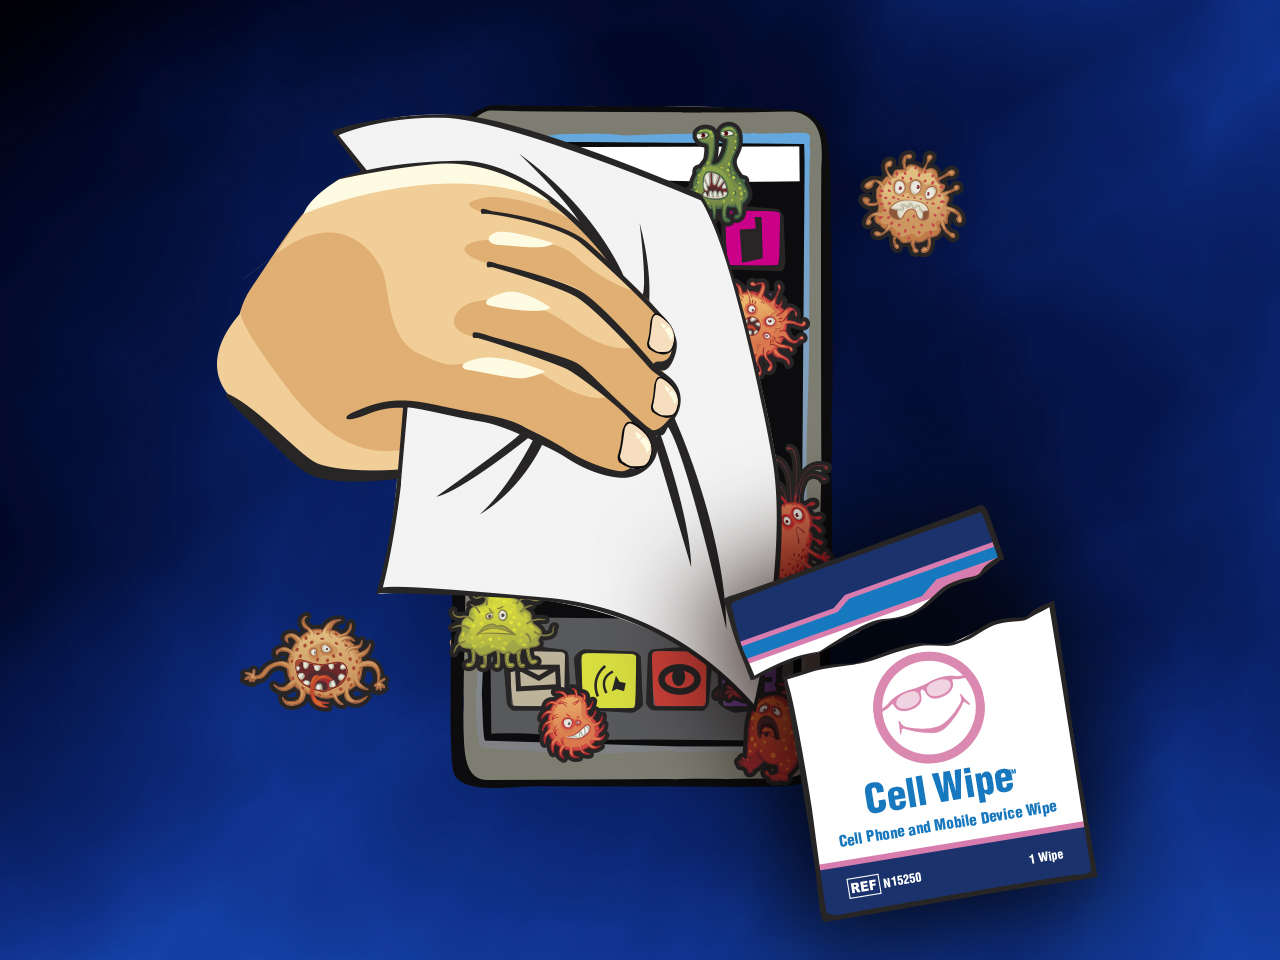 1-Cell_Wipe_1280x960